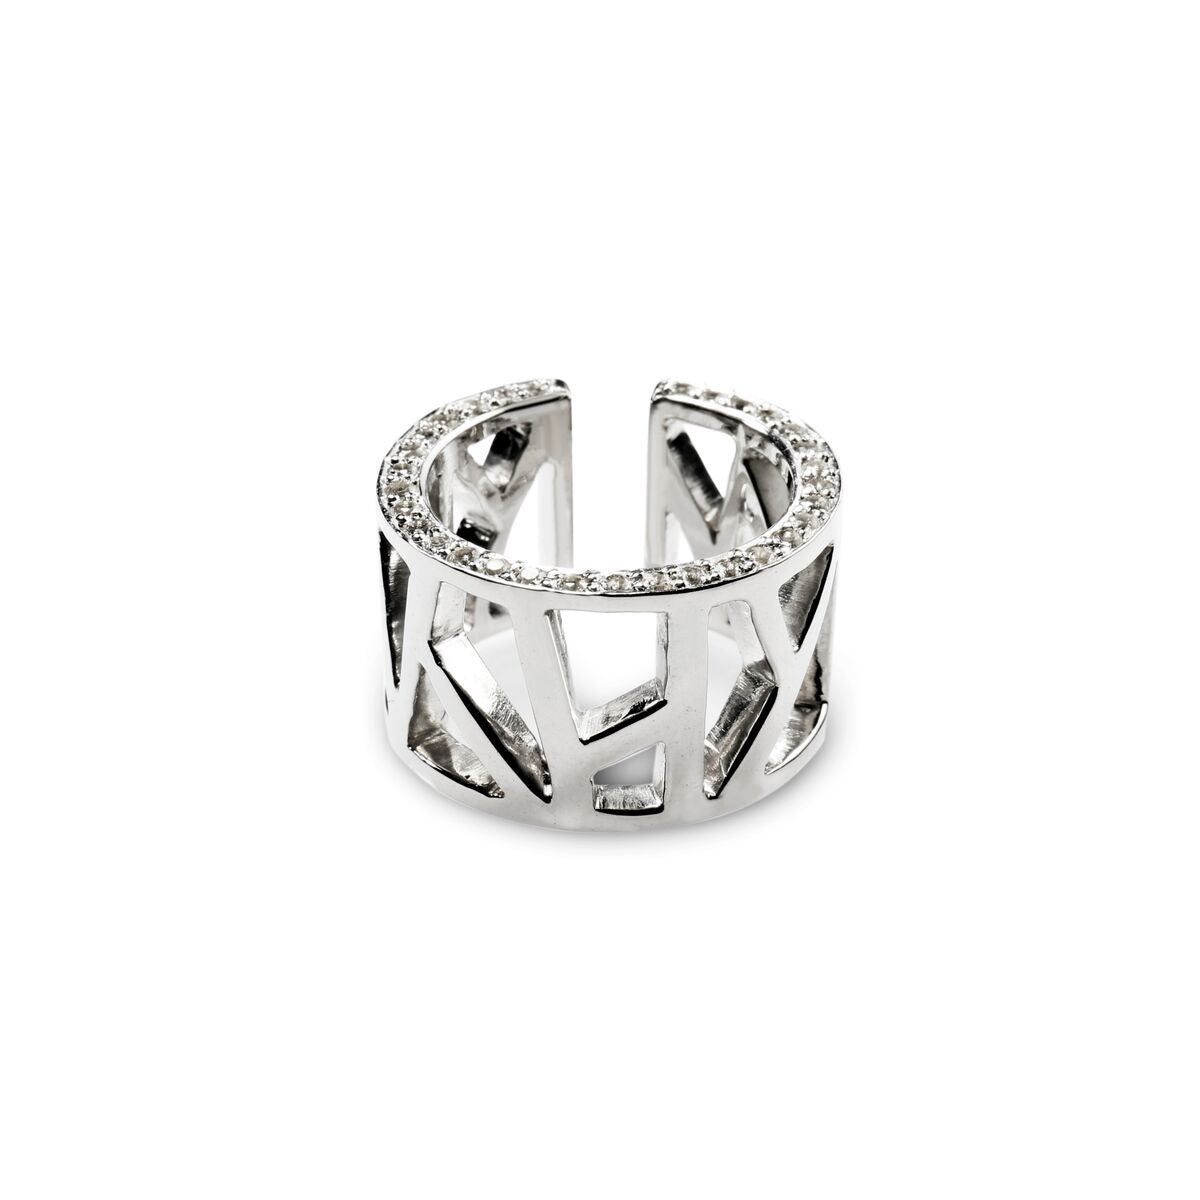 Lattice Open Unisex Ring with White Sapphires, rhodium